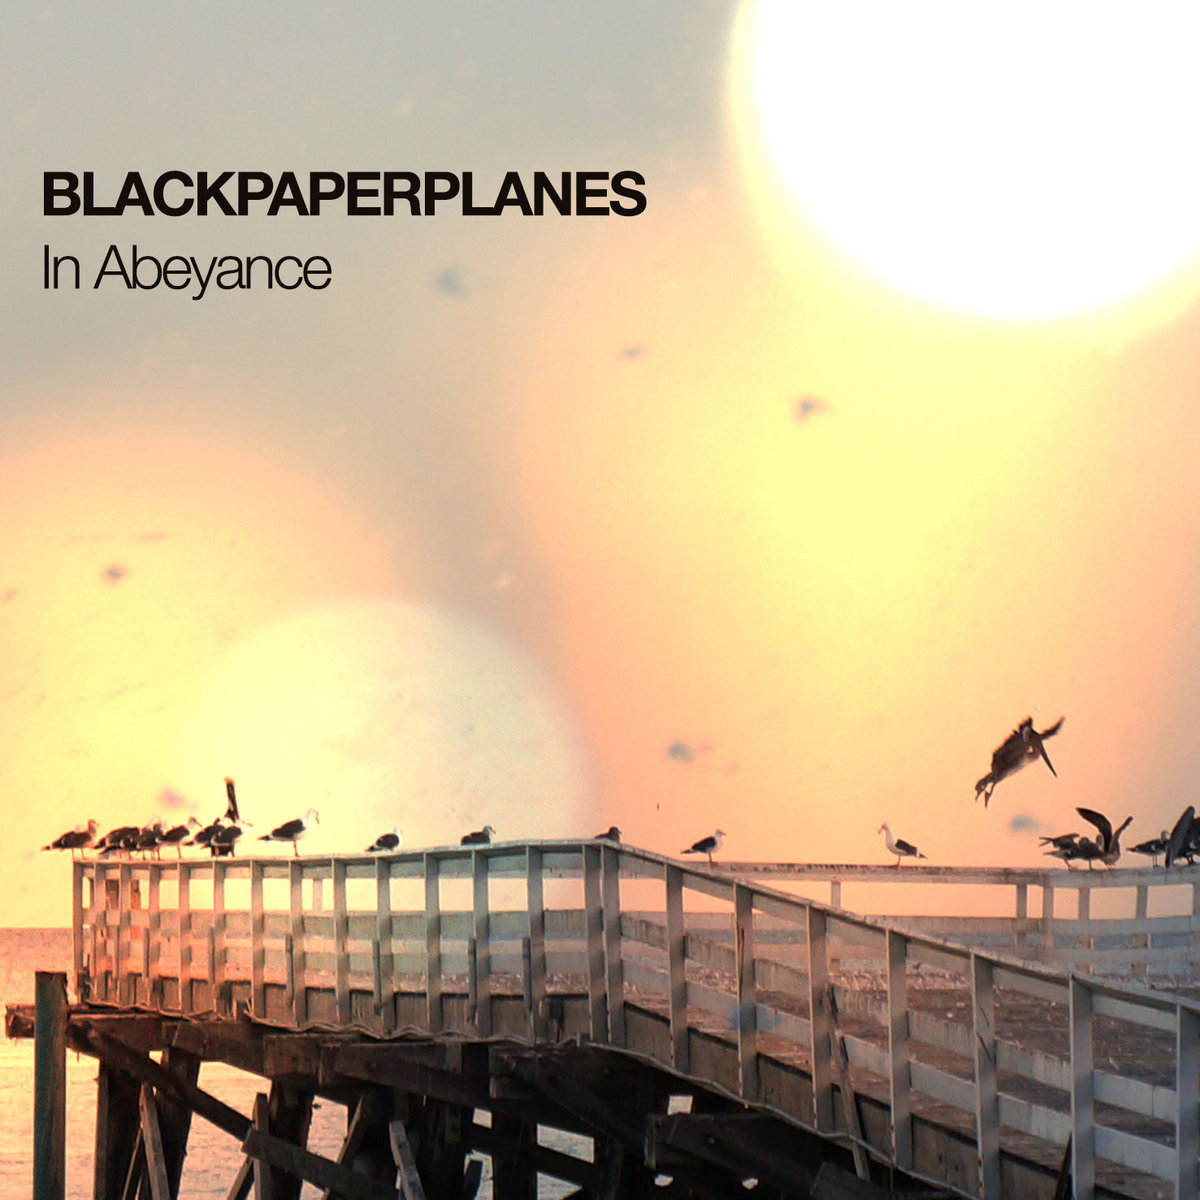 blackpaperplanes - In Abeyance